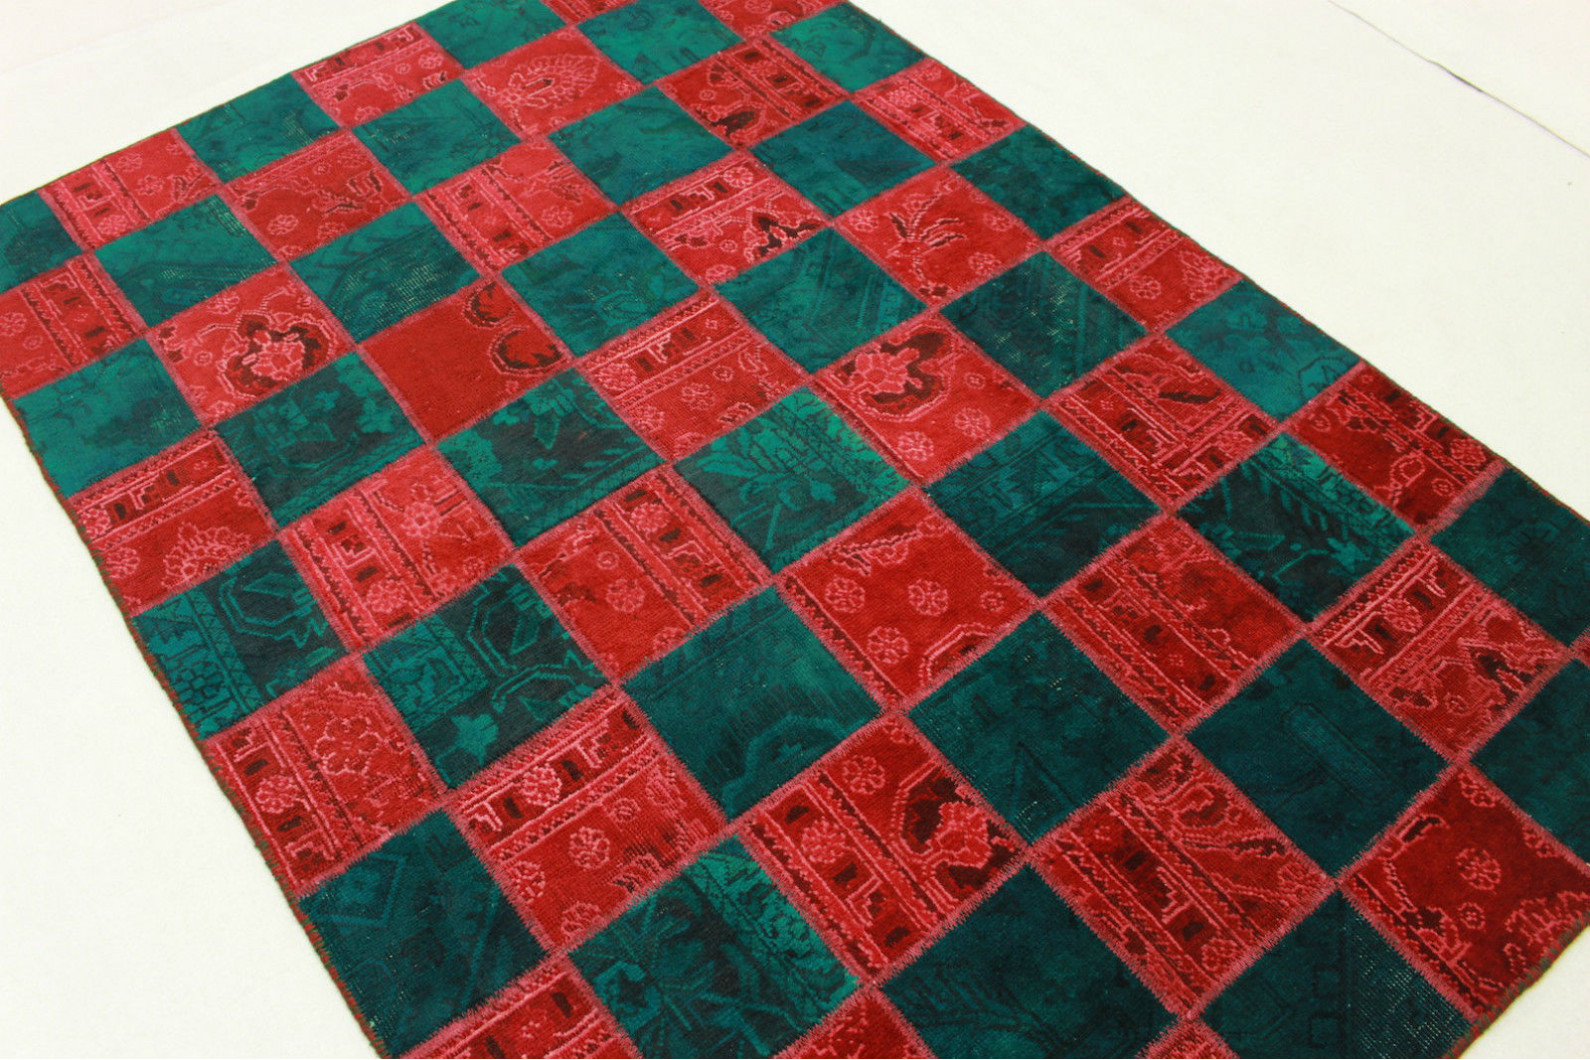 Patchwork Rug Red Turquoise In 200x140cm 1001 1975 Buy